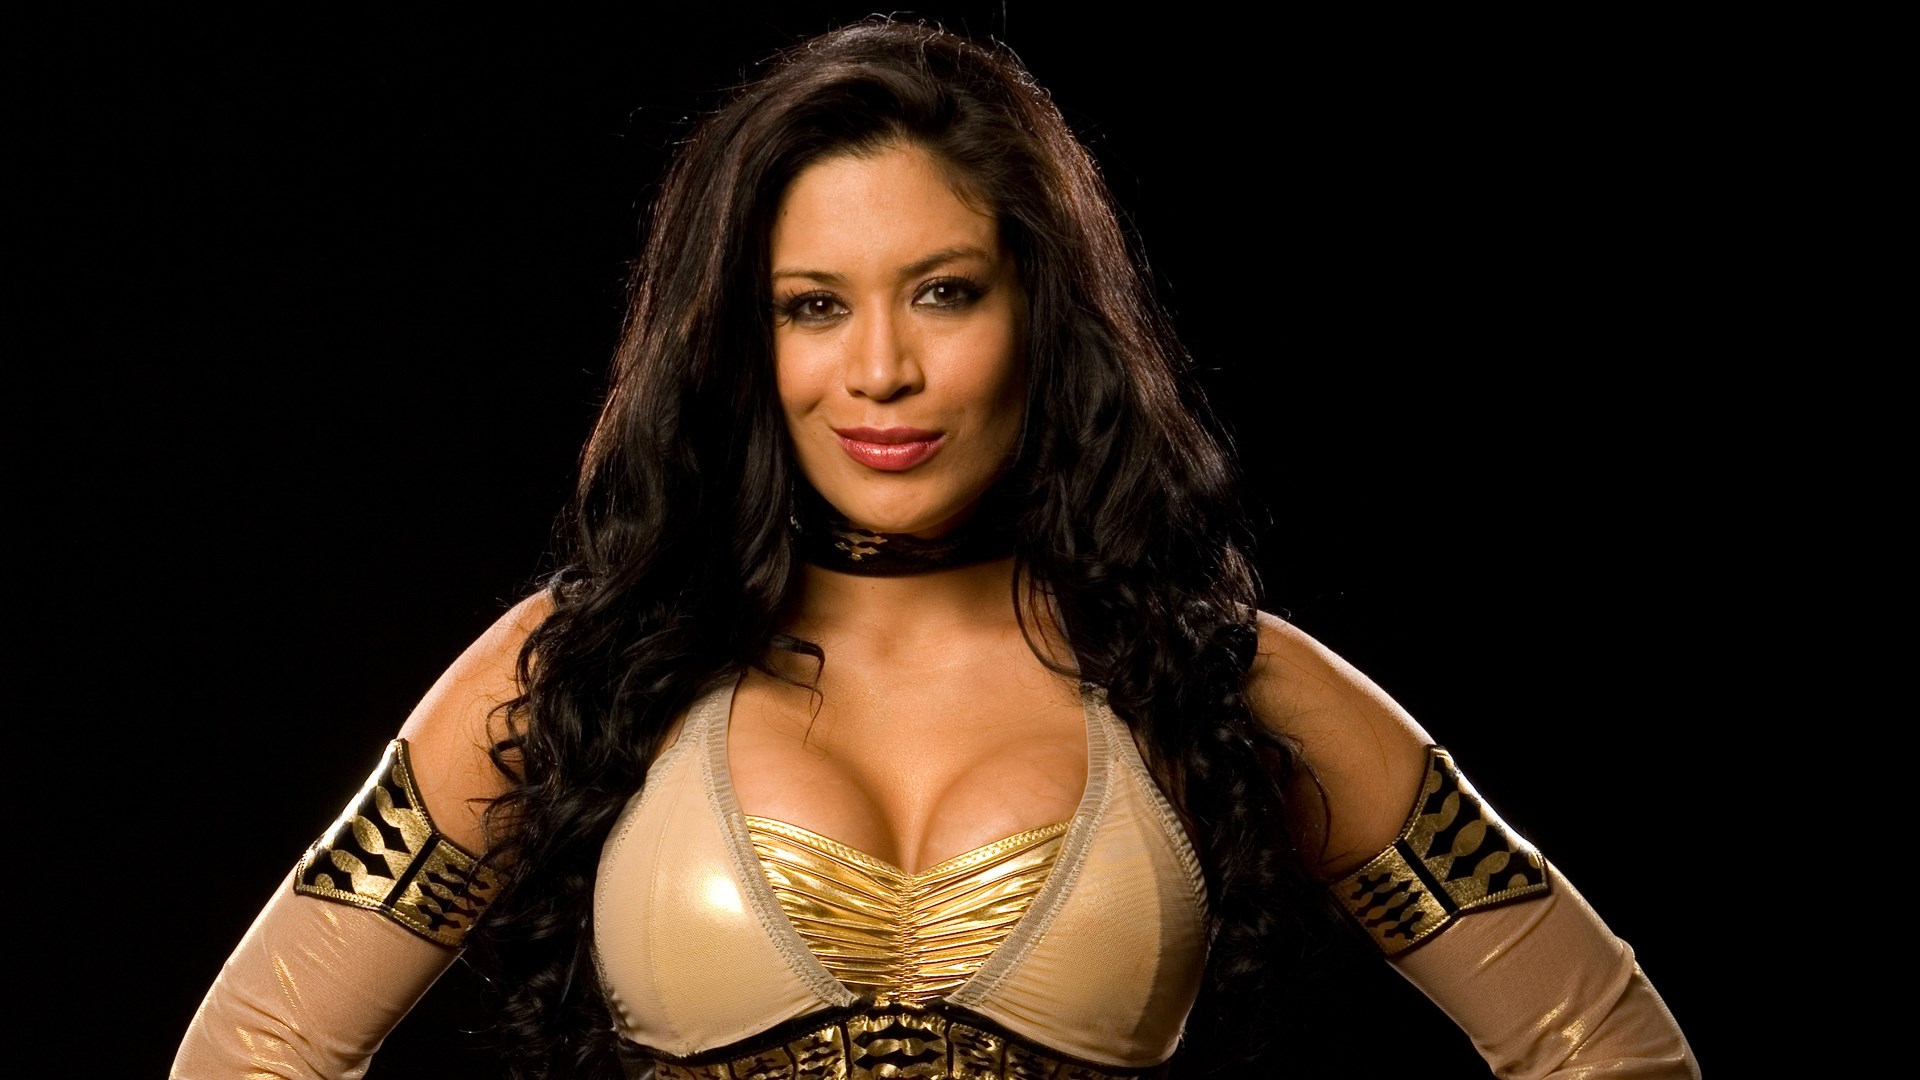 Top 10 Most Scandalous WWE Divas Of All-Time 1